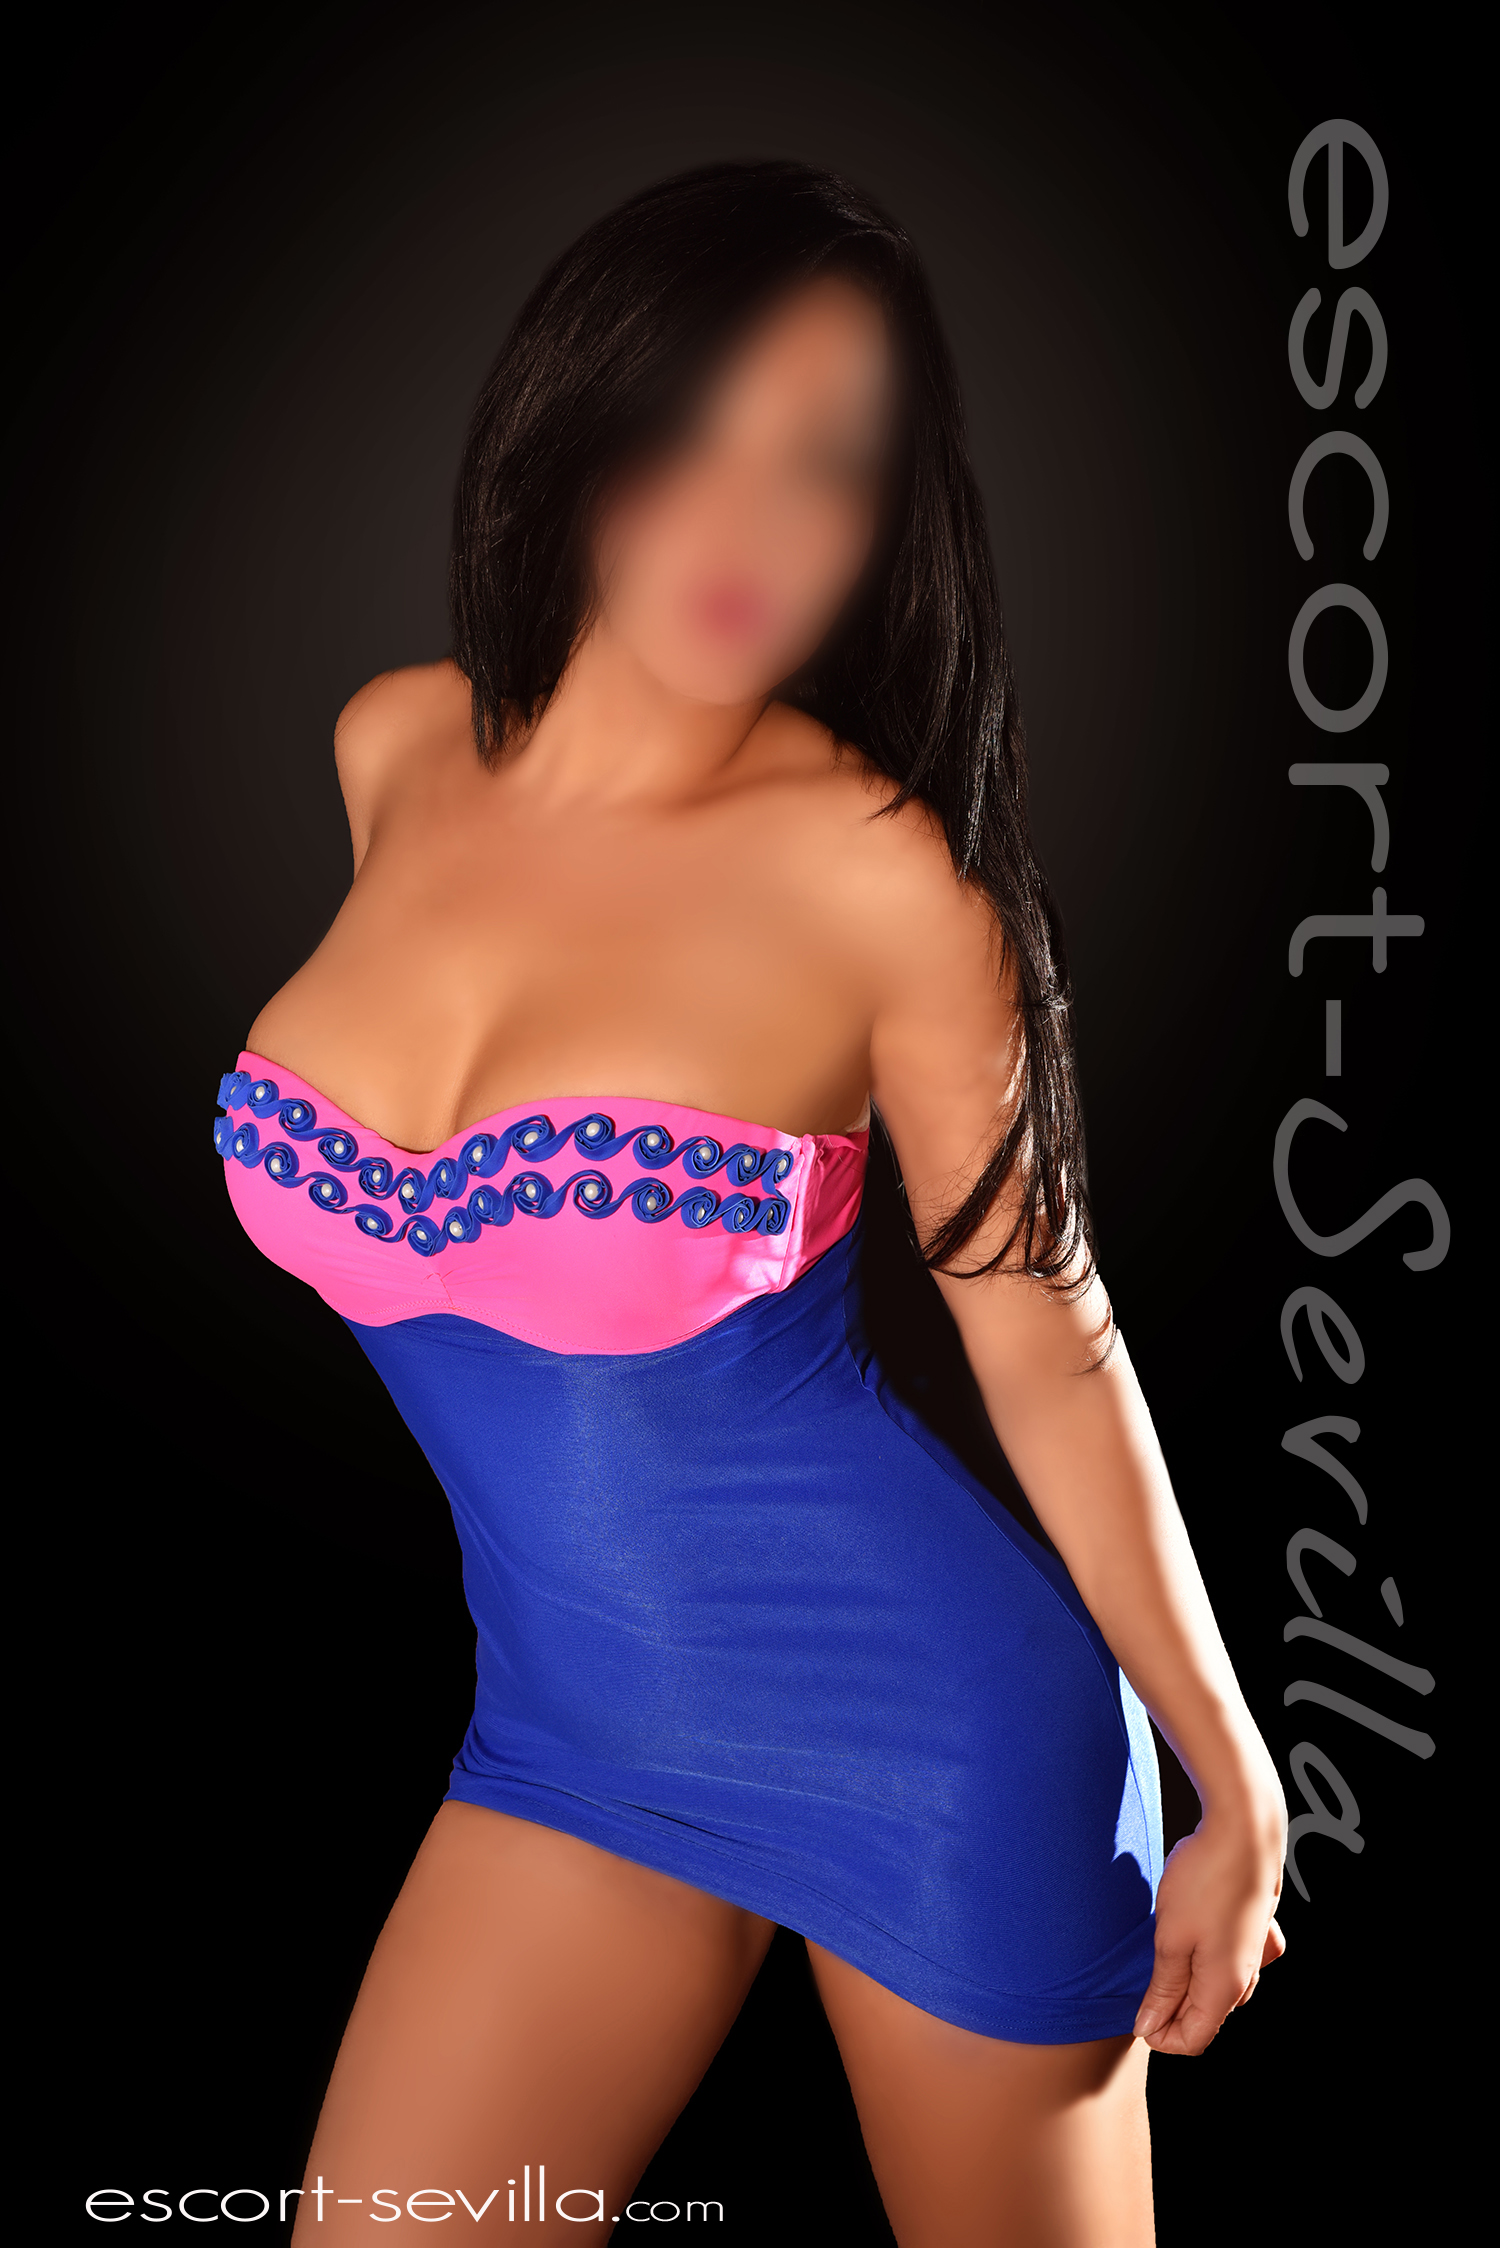 India escorts bbbj craigslist: louisville, KY jobs, apartments, for sale, services, community, and events